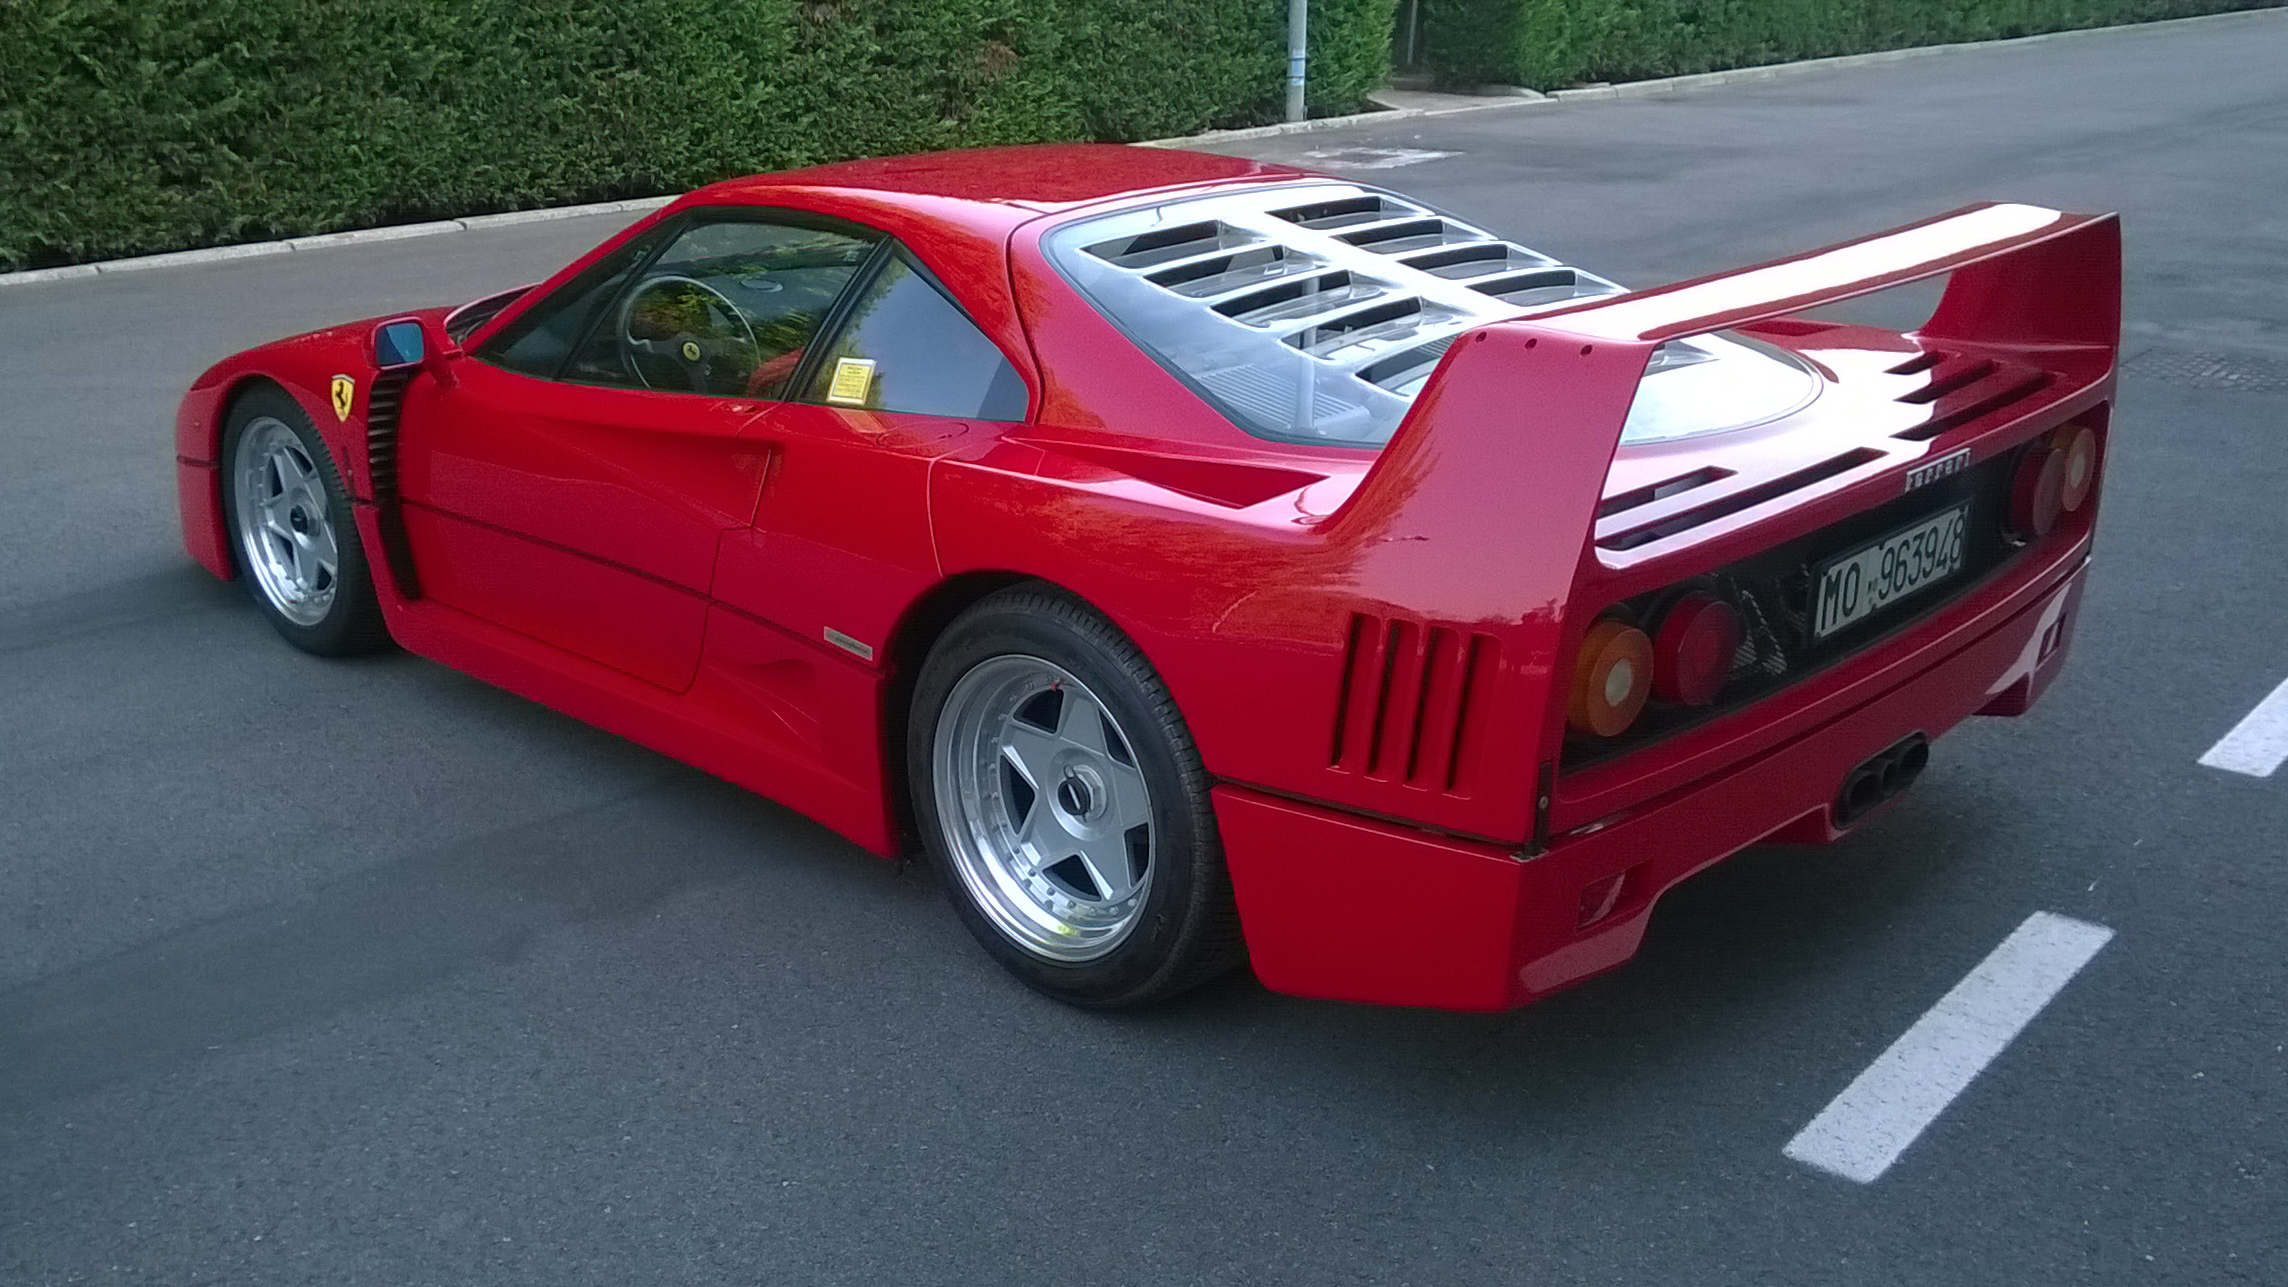 This Ferrari F40 just sold for £791,000 at auction   Top Gear